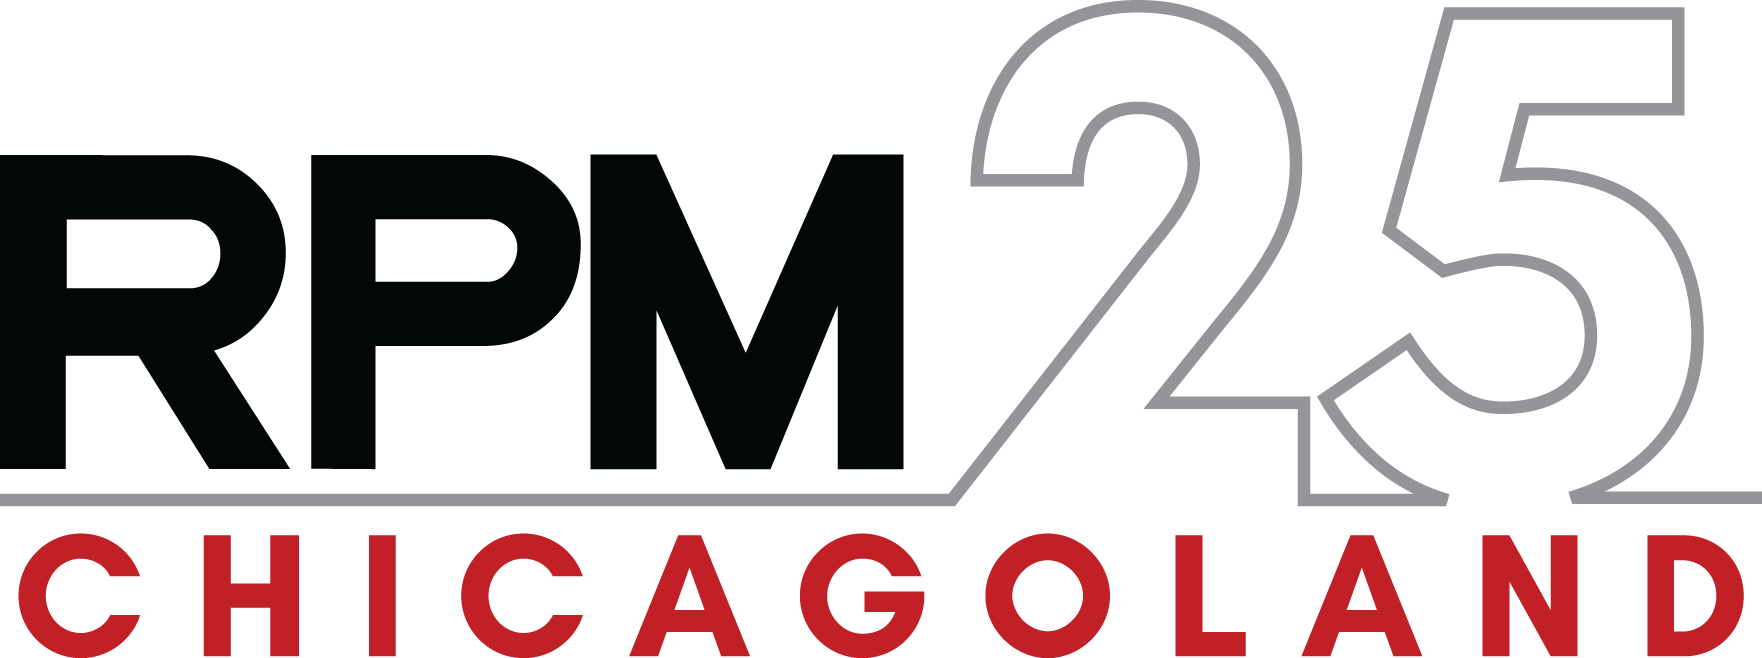 RPM CONFERENCE - Chicagoland: October 24-26, 2019